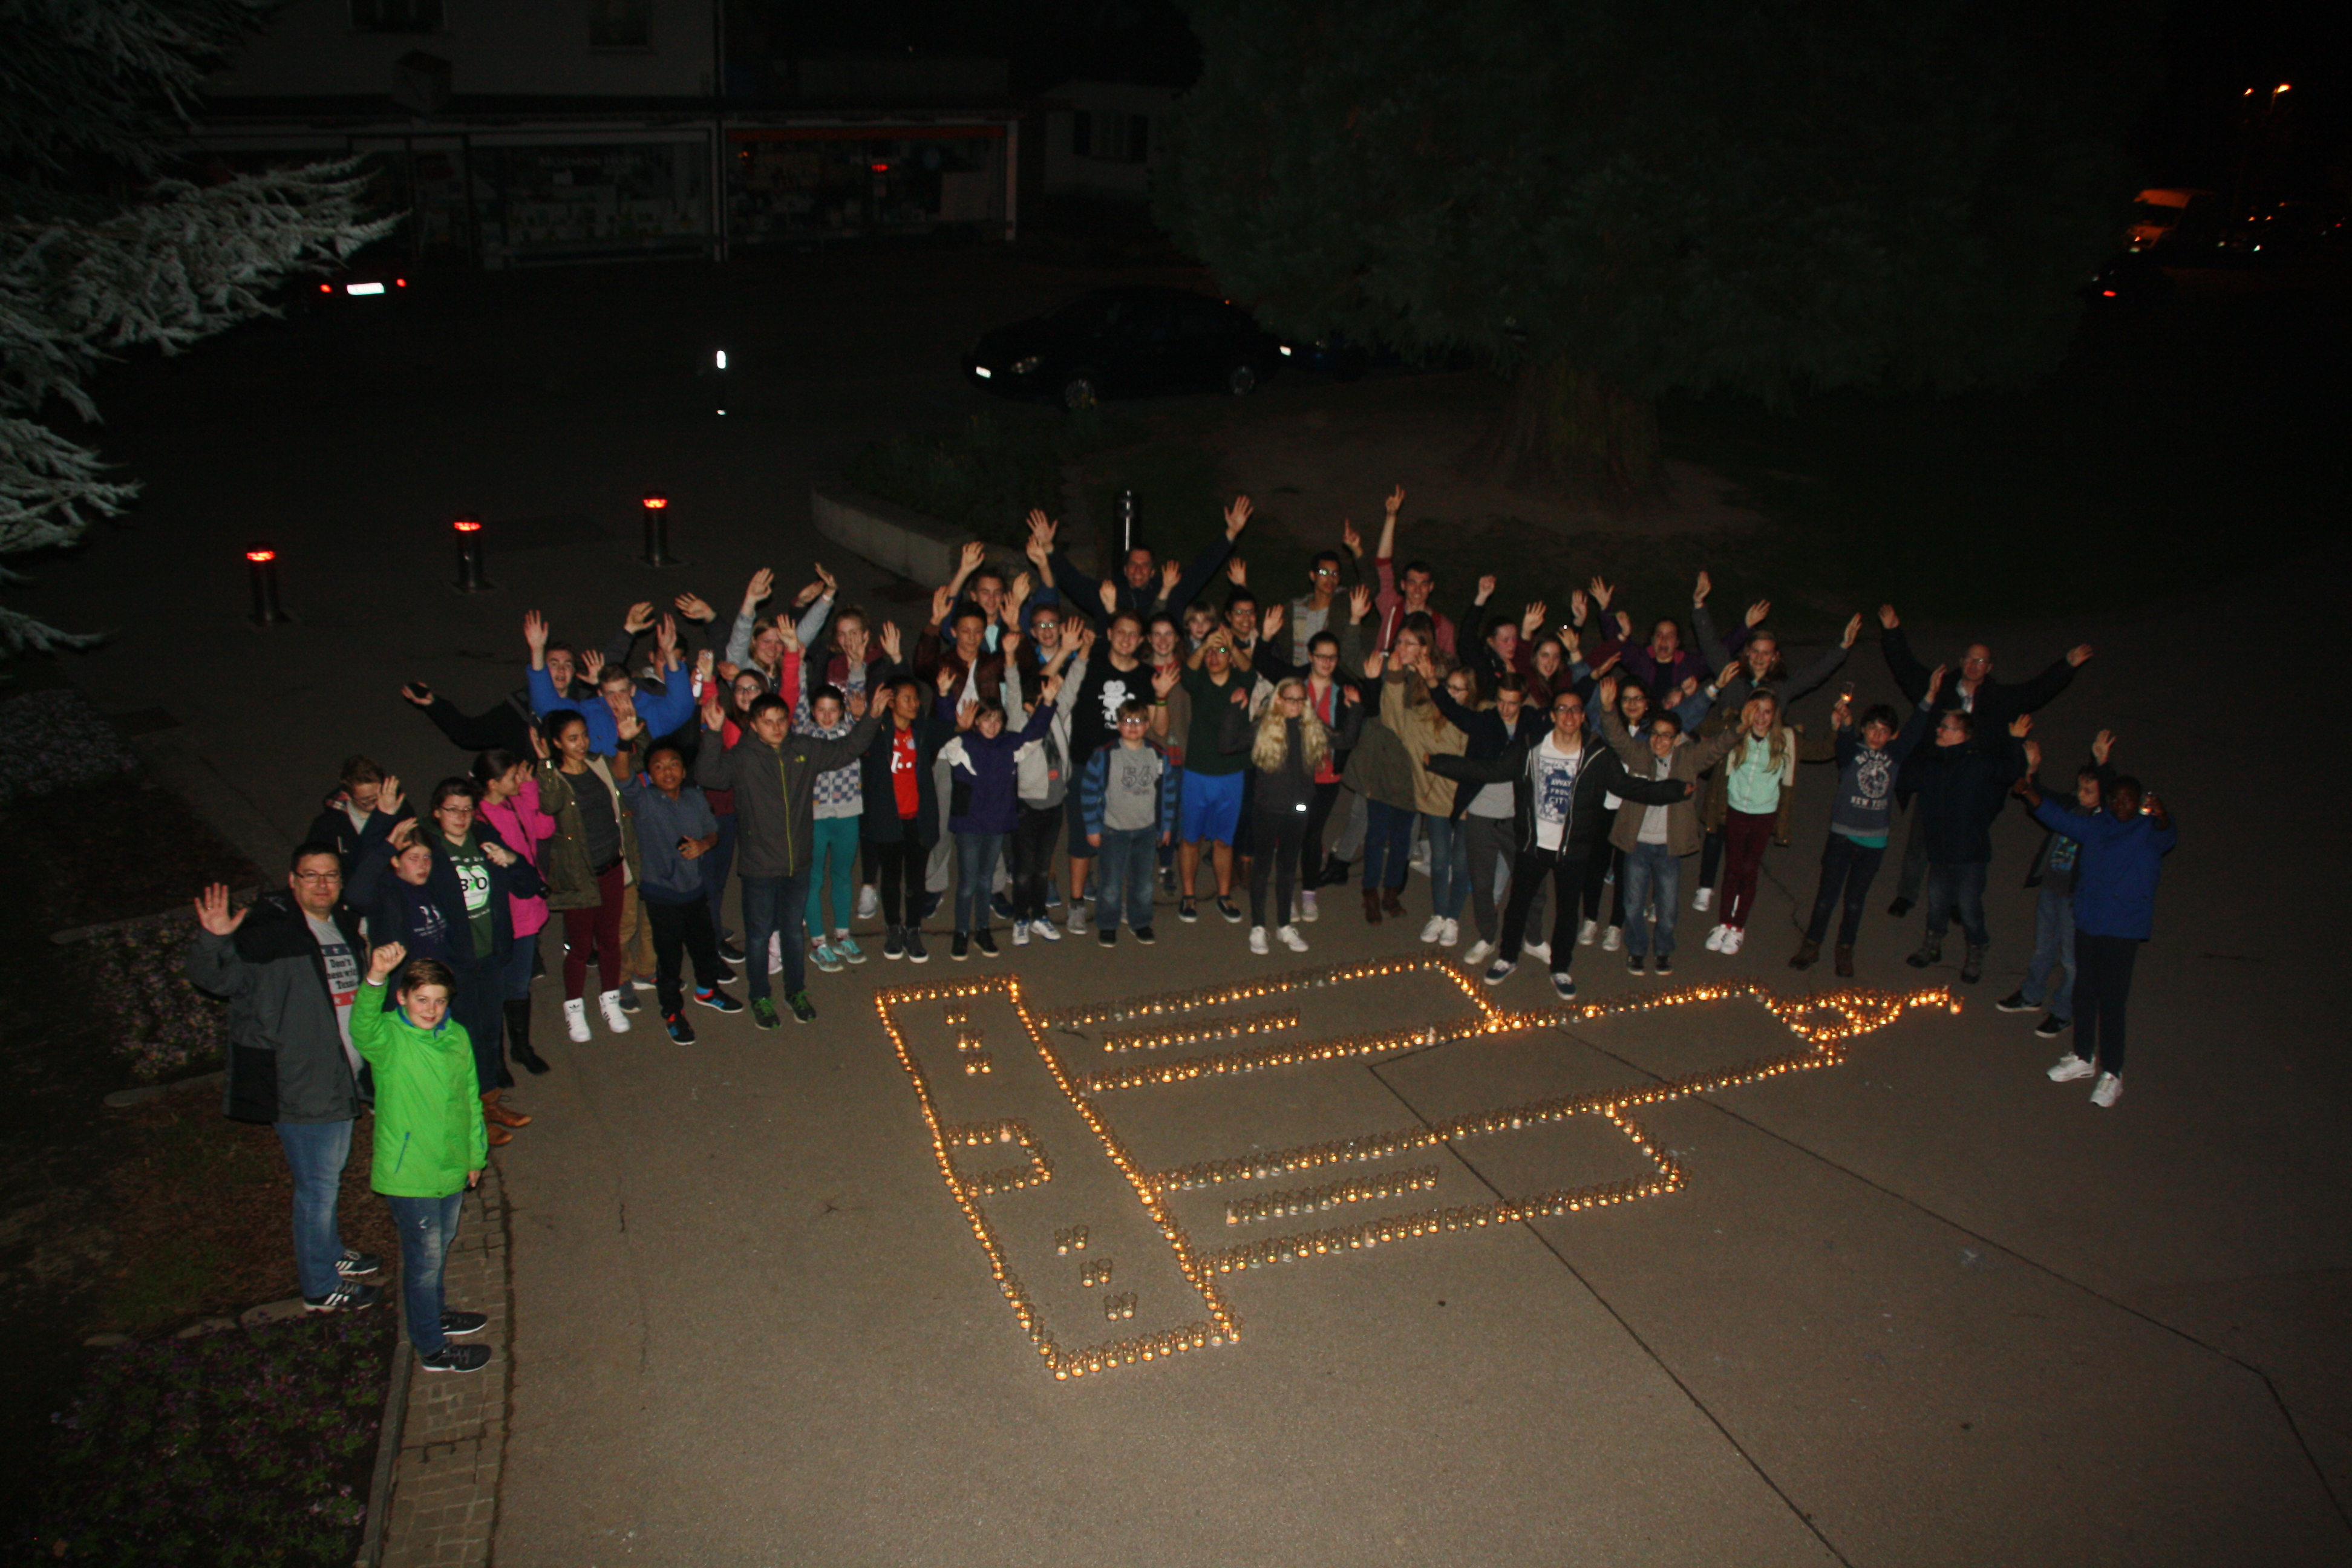 Youth of the Frankfurt Germany Stake gather for a group photo beside a candle-created image of the temple during an annual stake youth temple camp in Freiberg, Germany.